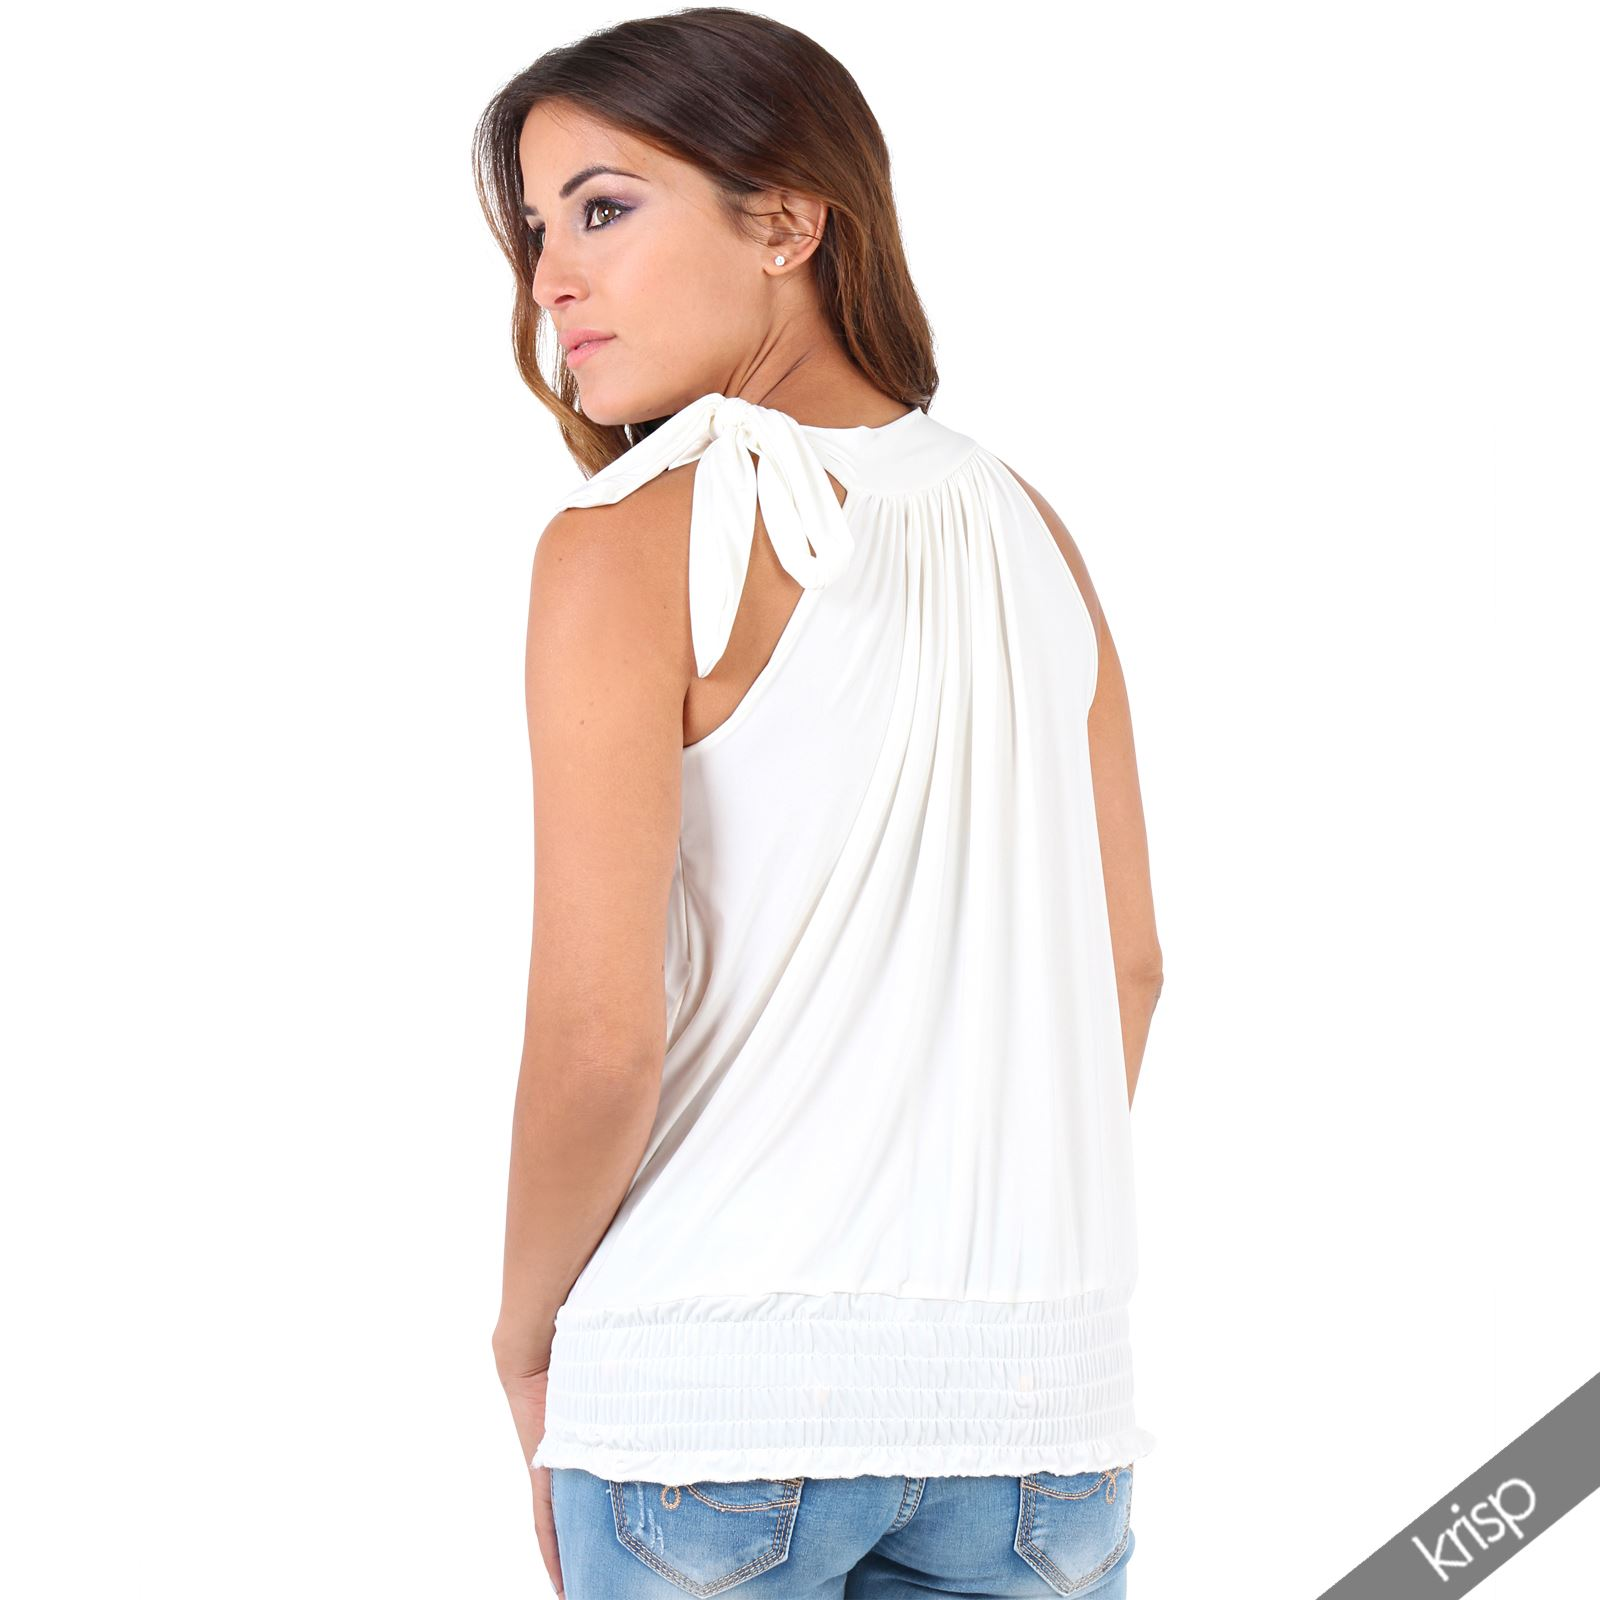 Womens-Ladies-Sleeveless-Blouse-Halter-Neck-Vest-Top-Party-T-Shirt-Plus-Size thumbnail 10